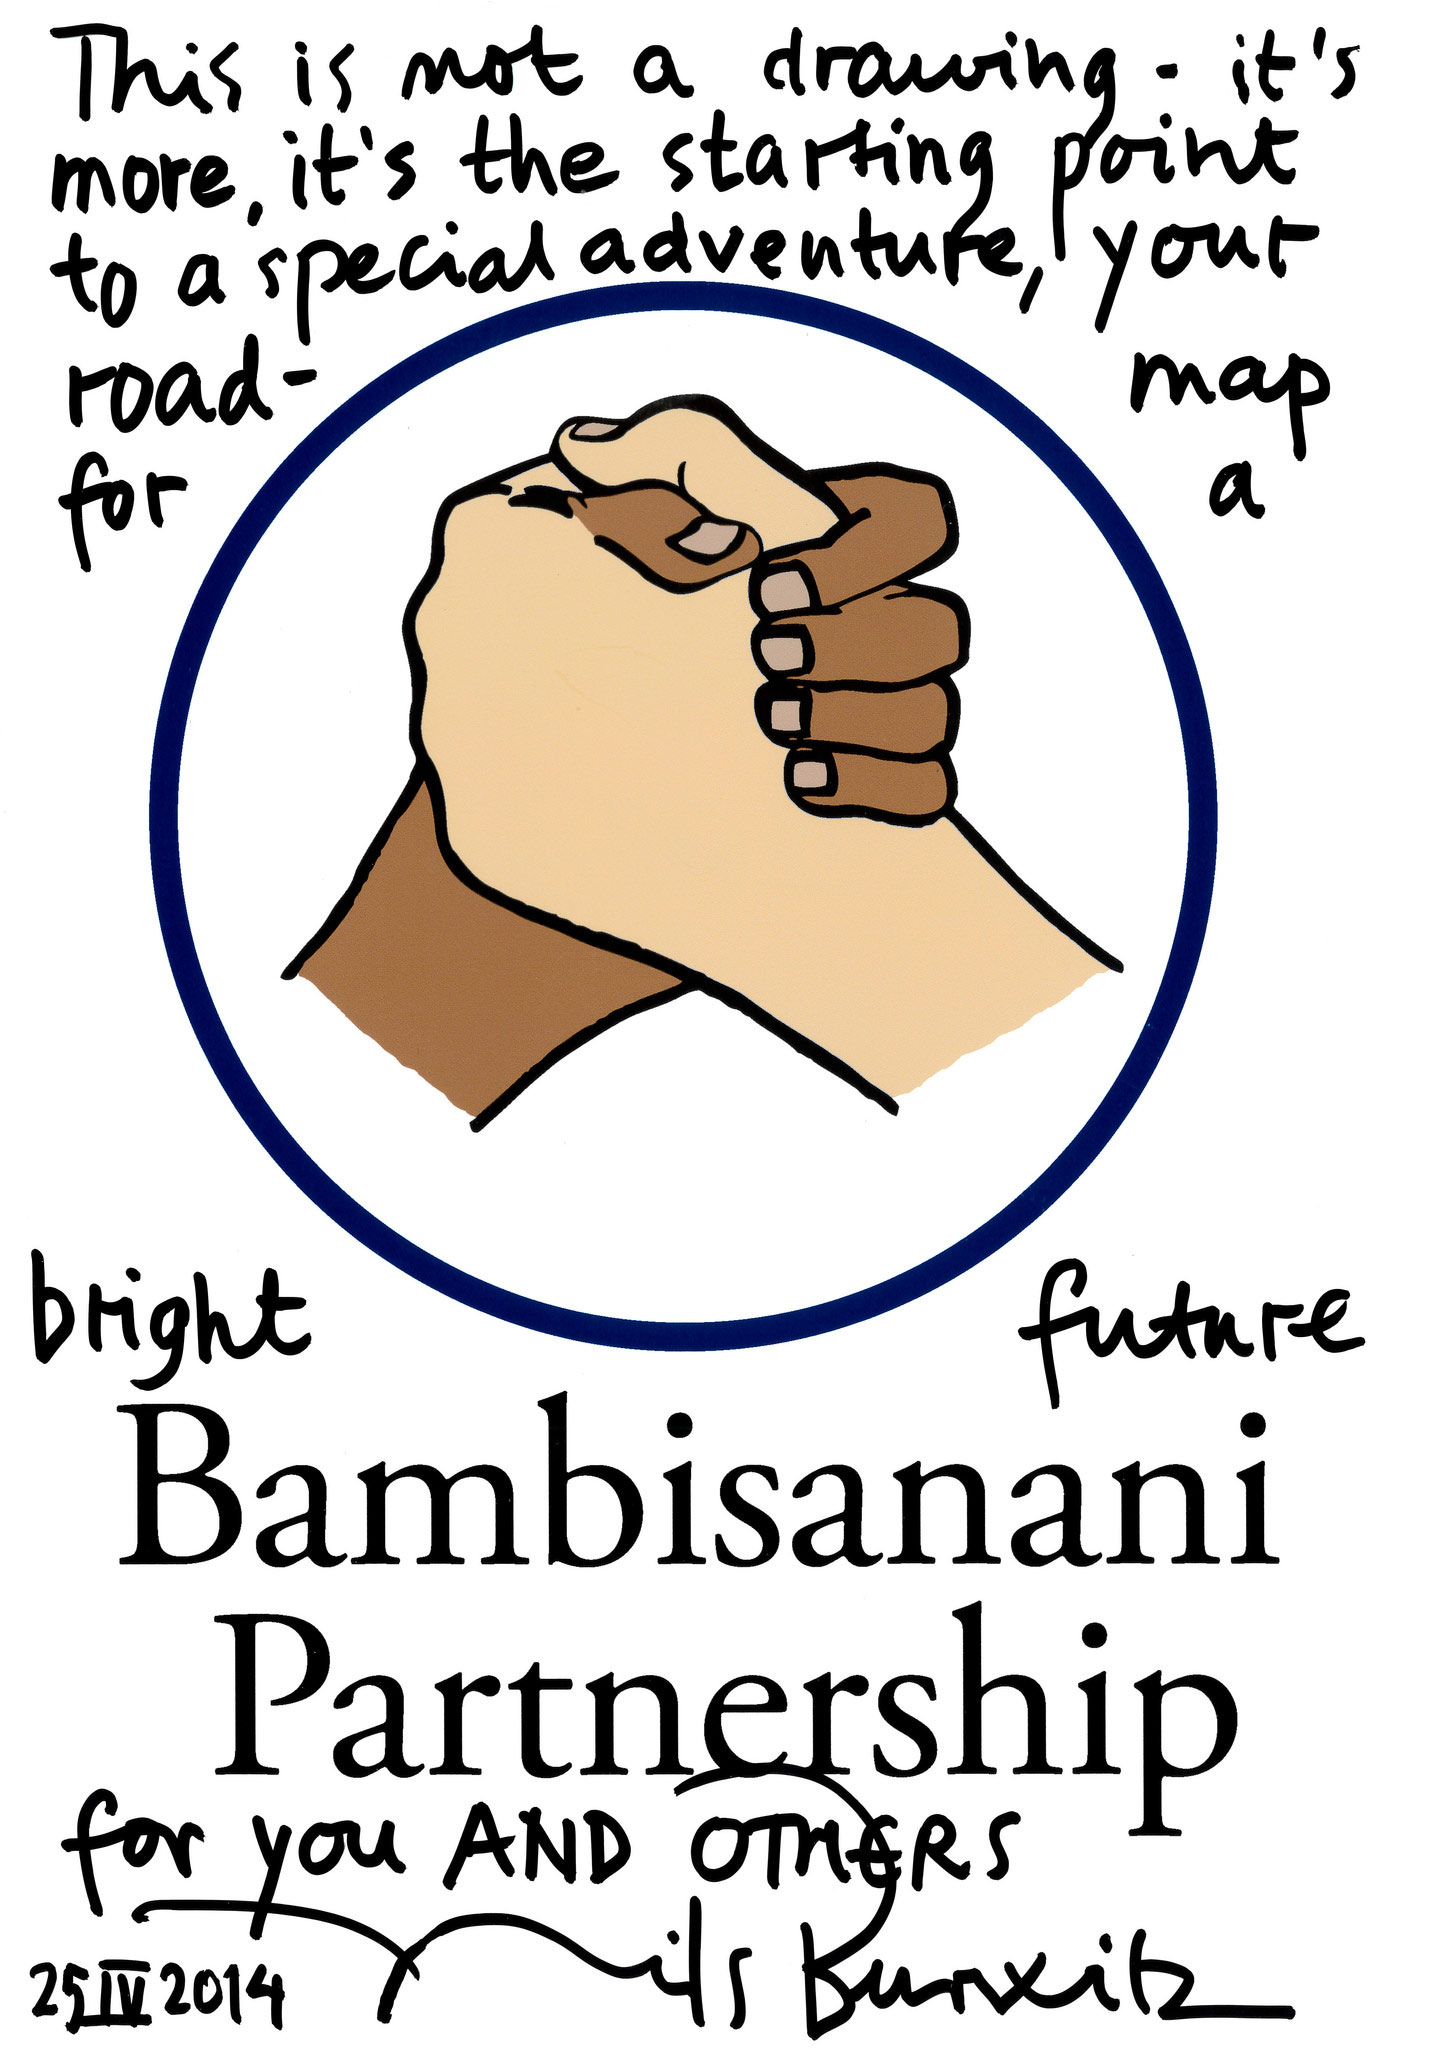 """This is not a drawing - it's more, it's the starting point to a special adventure, your road-map for a bright future"" Message to the Bambisanani Partnership from Nils Burwitz, 25 April 2014"